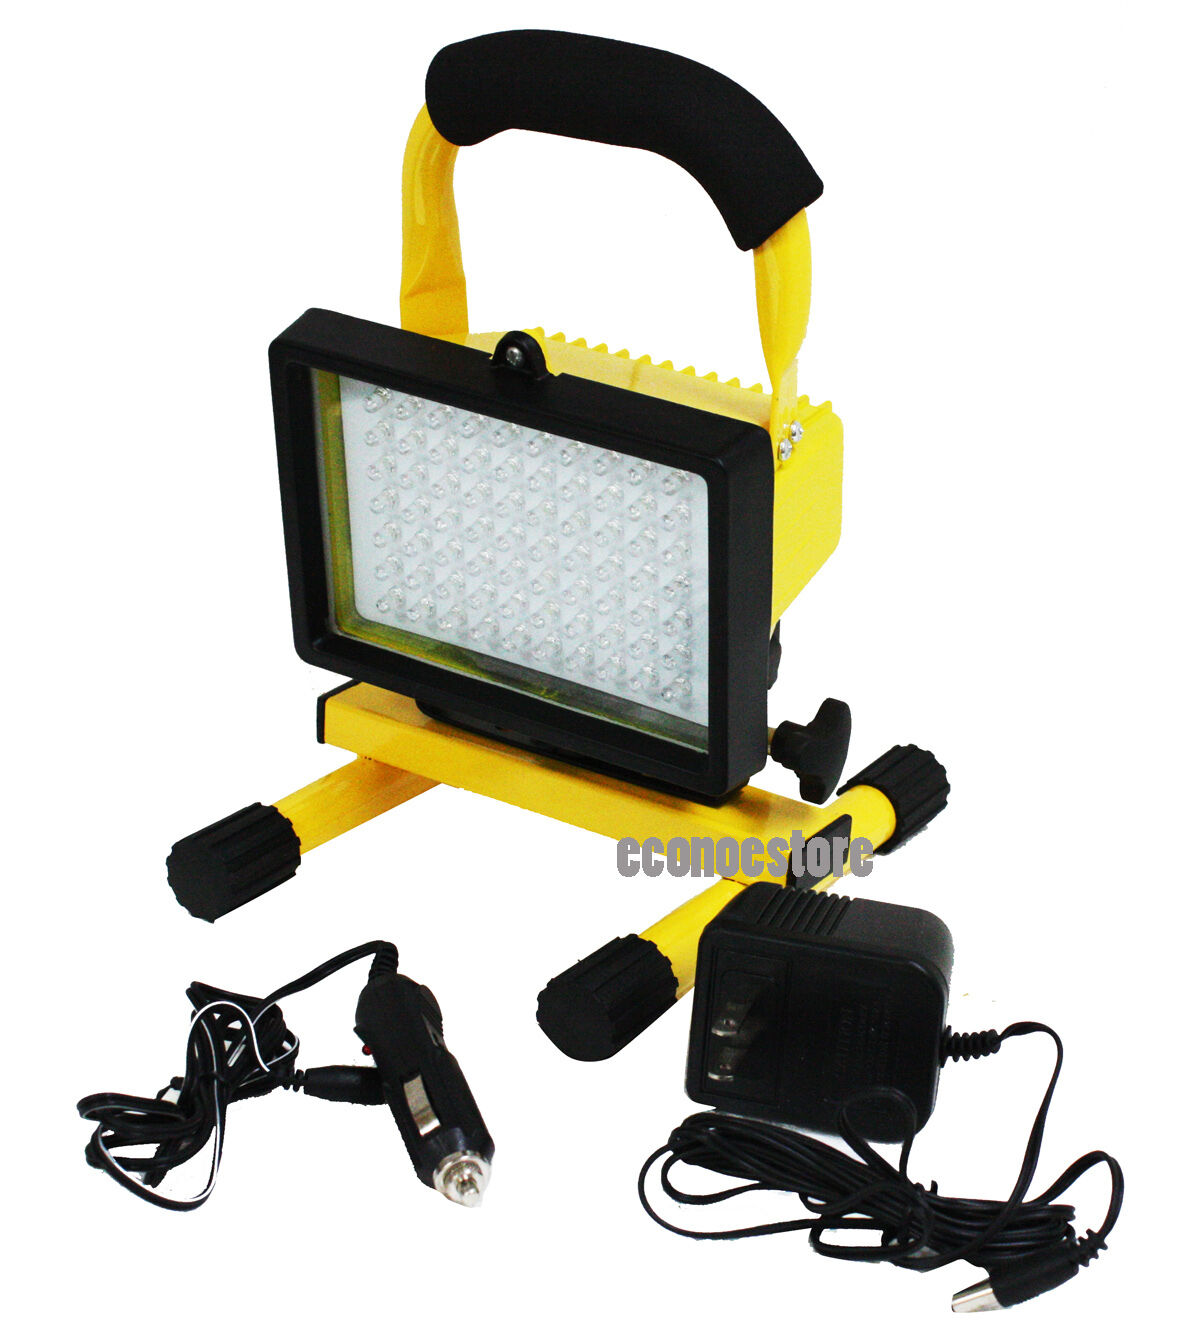 super bright 70 led rechargeable cordless worklight. Black Bedroom Furniture Sets. Home Design Ideas